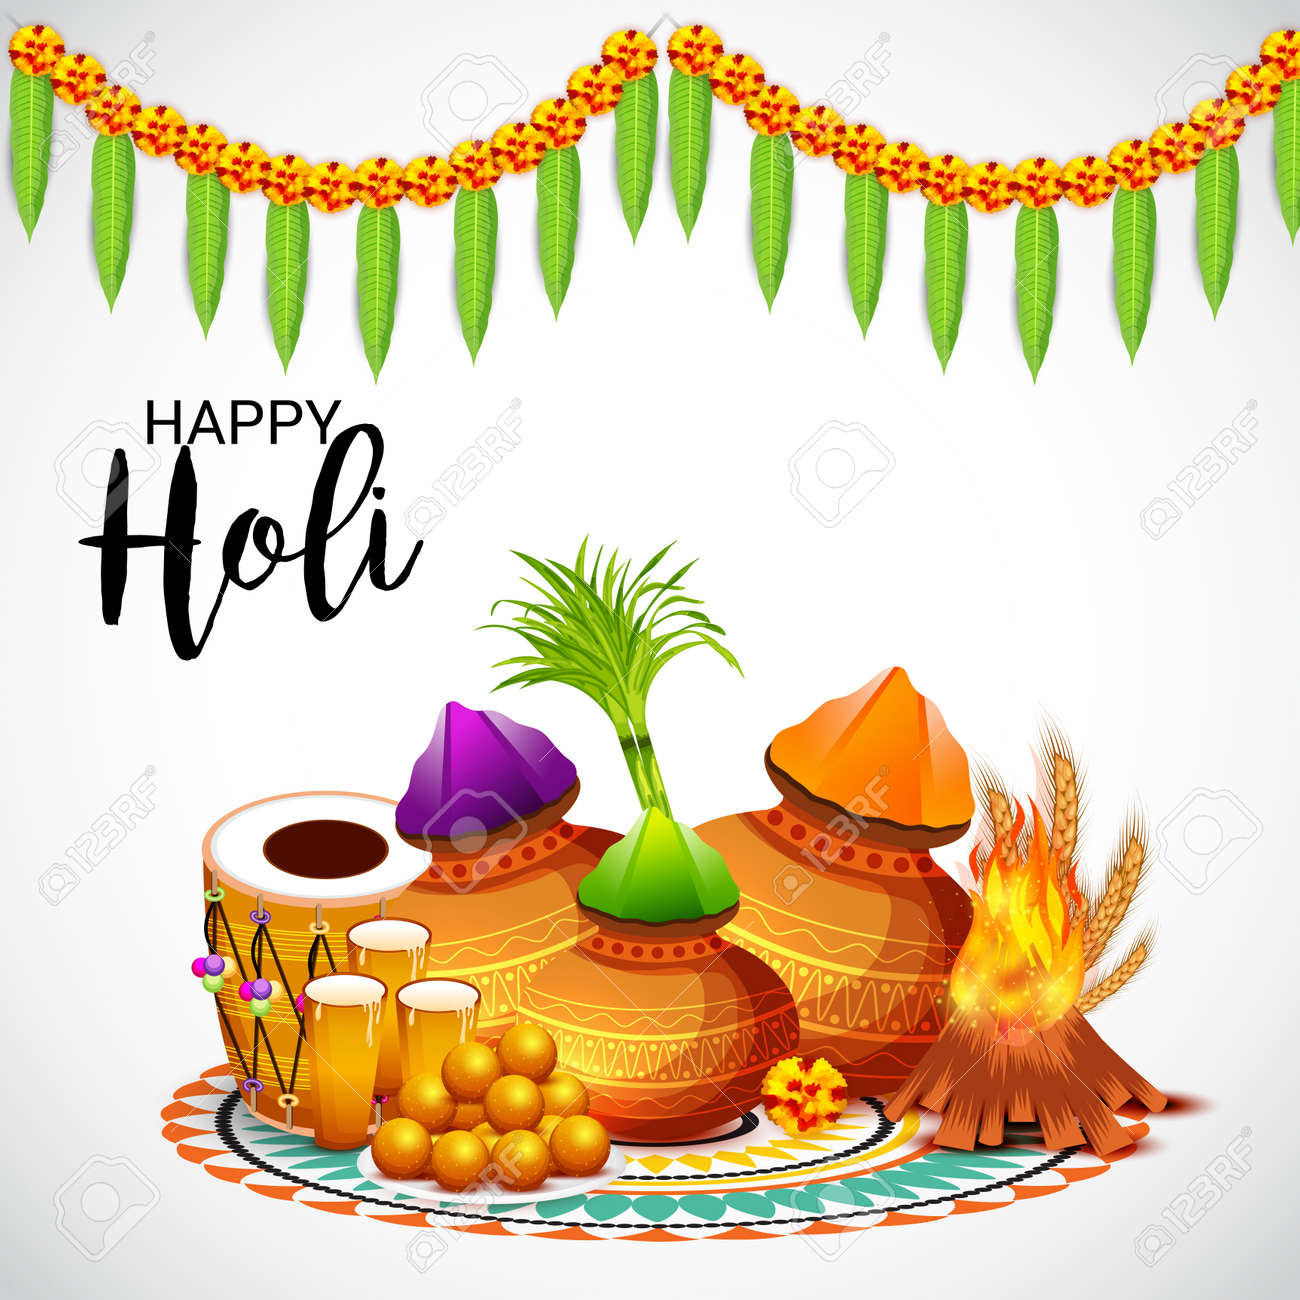 Happy holi greeting card template royalty free cliparts vectors happy holi greeting card template stock vector 95741255 m4hsunfo